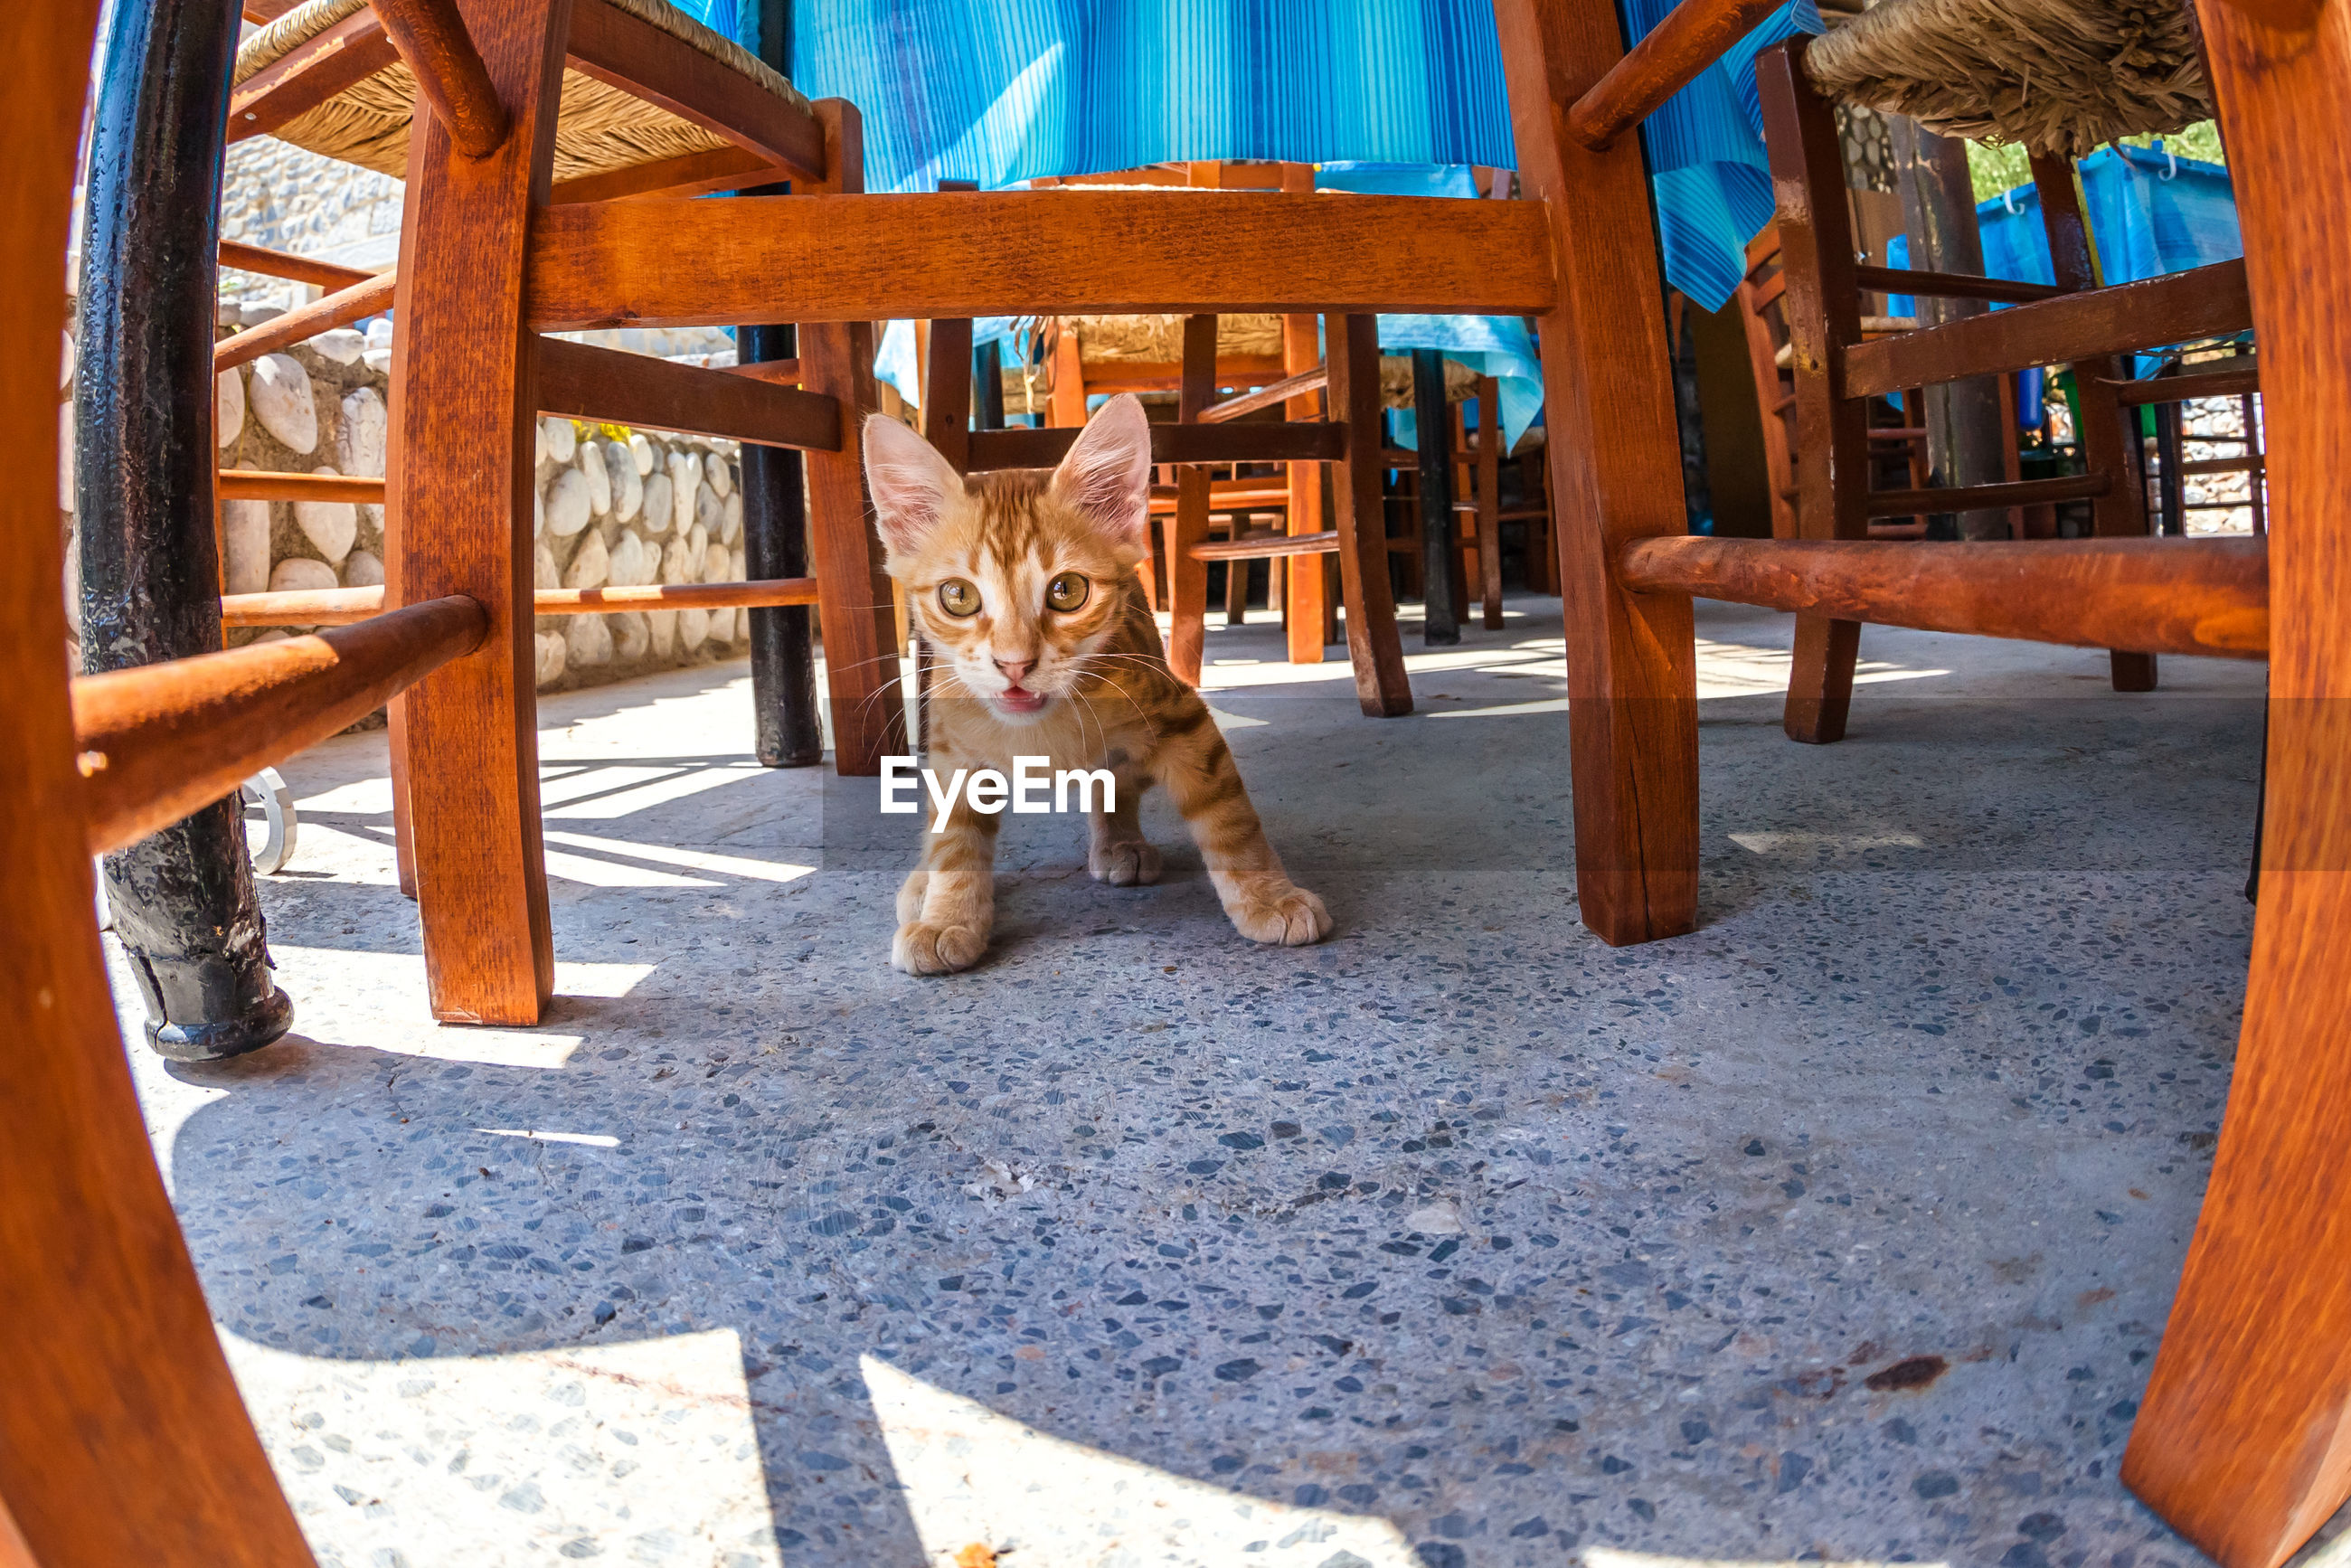 Close-up of kitten under table